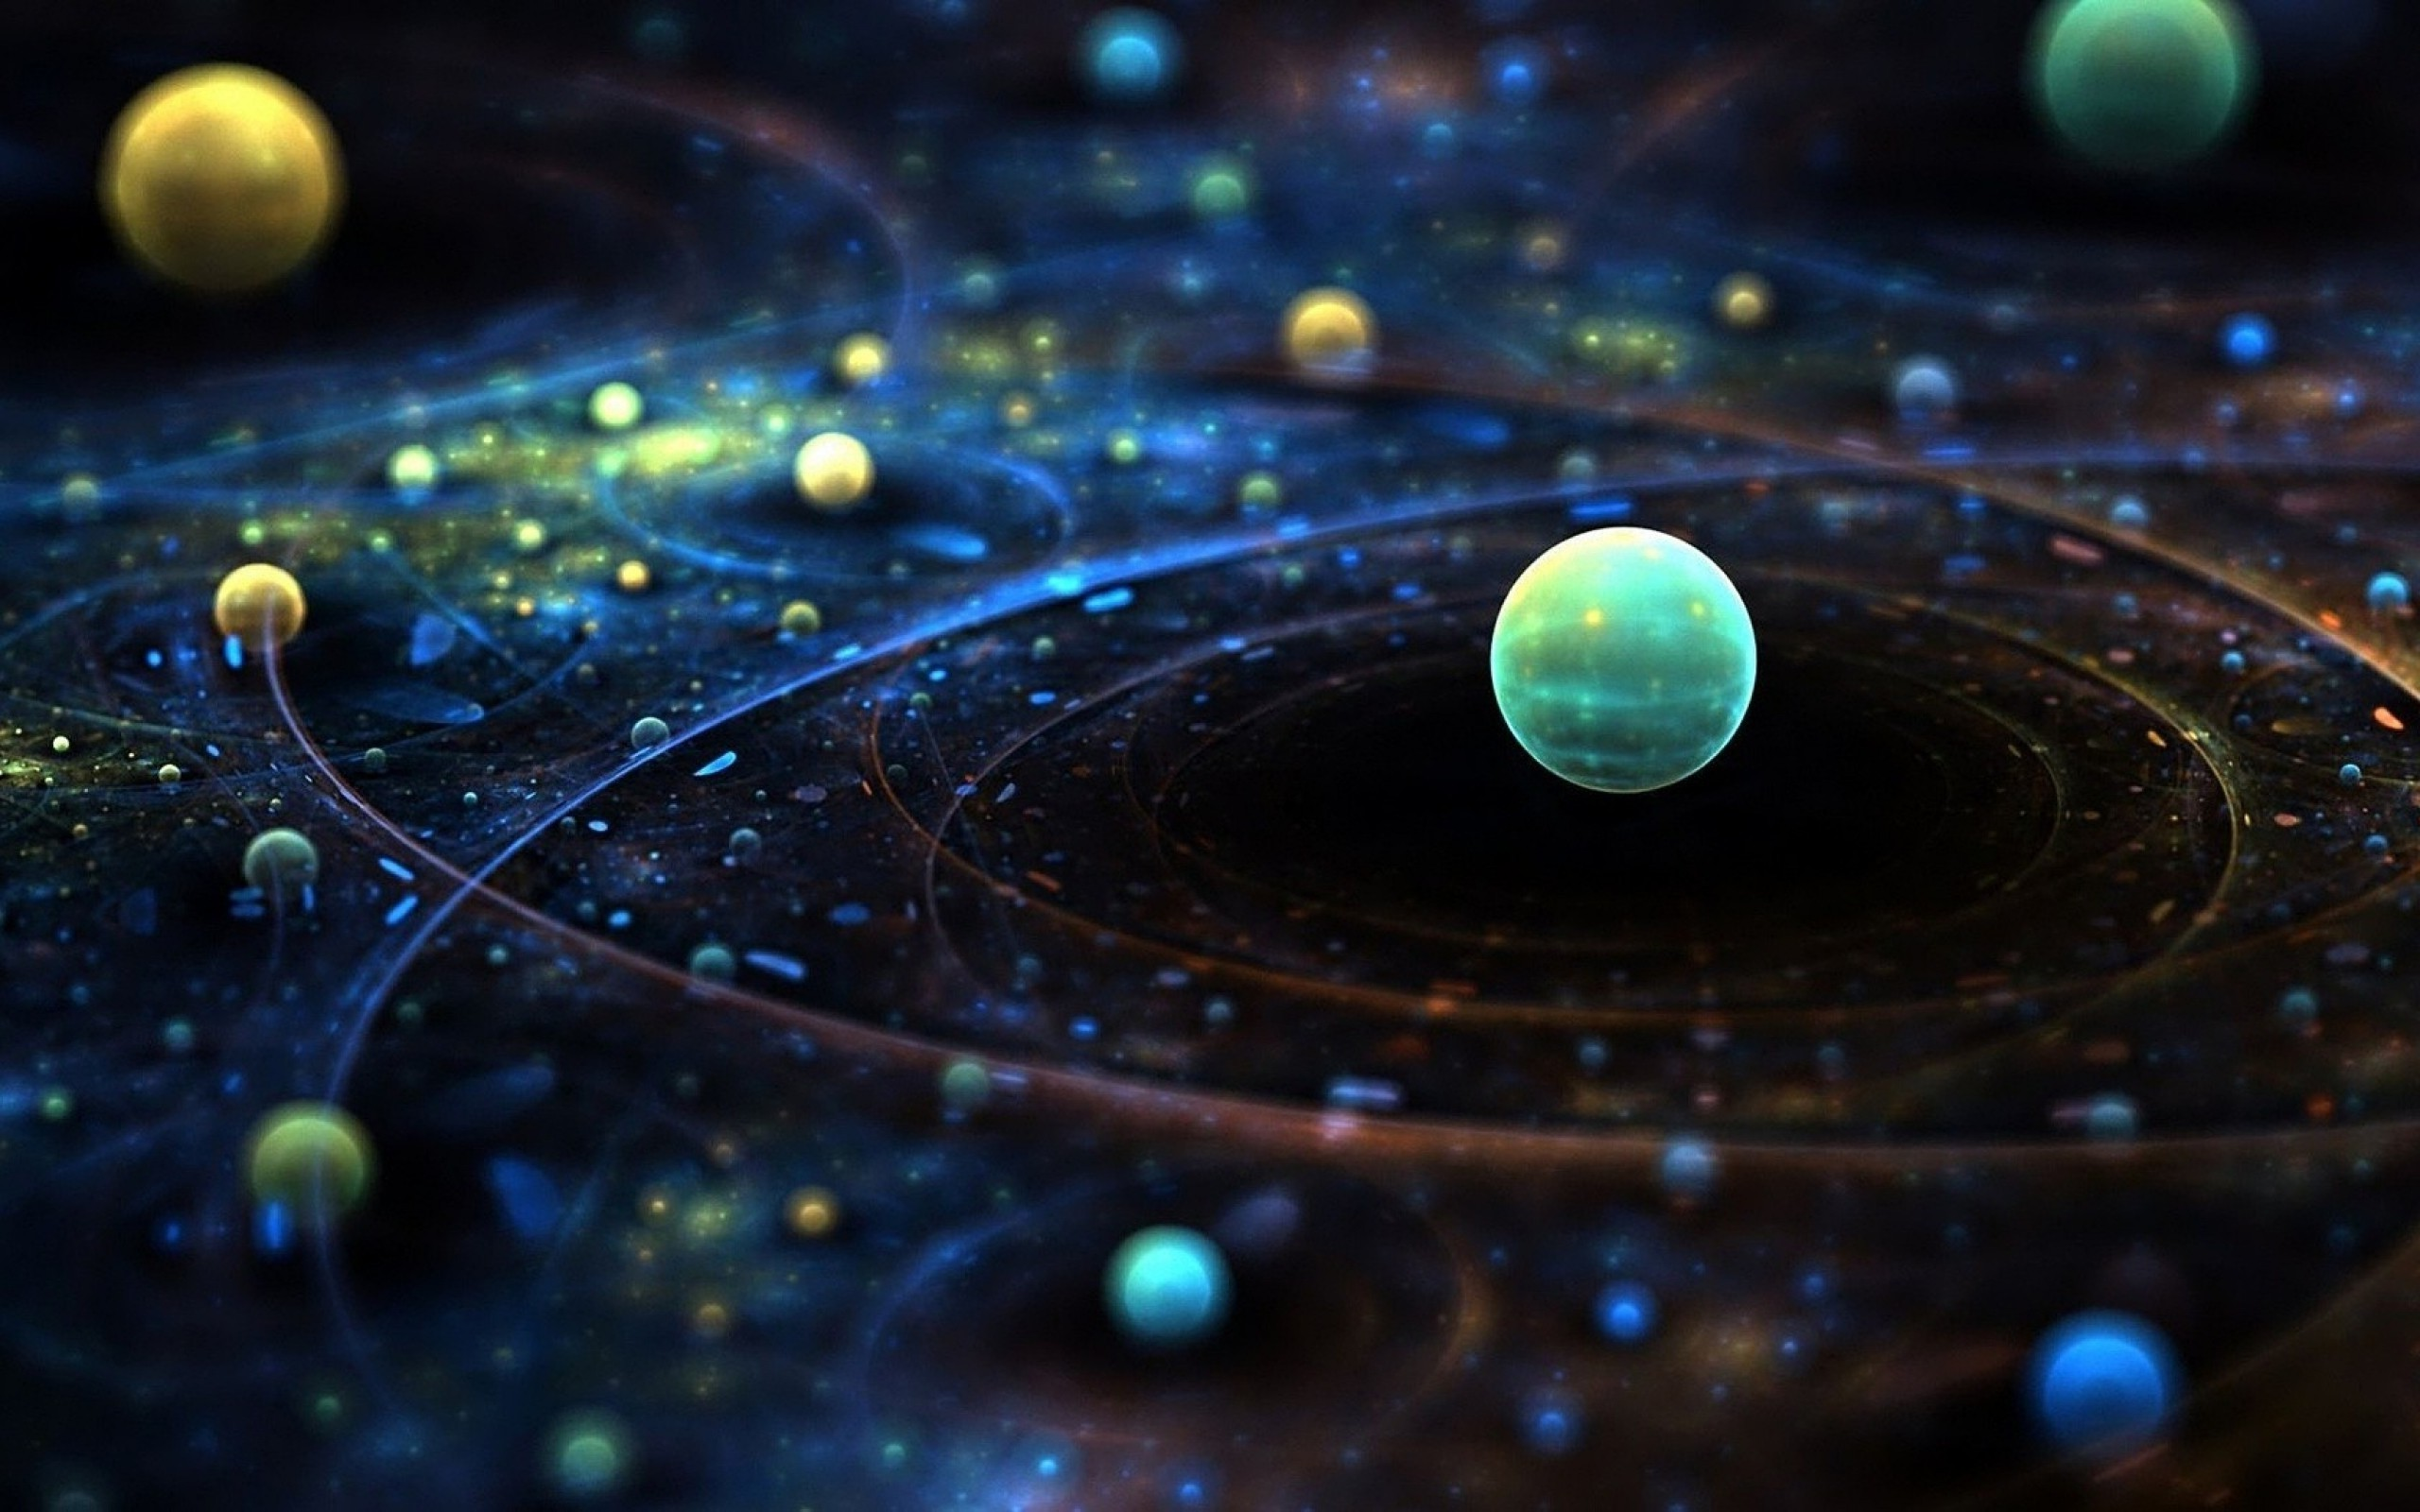 Abstract View of Planets Best HD Wallpaper